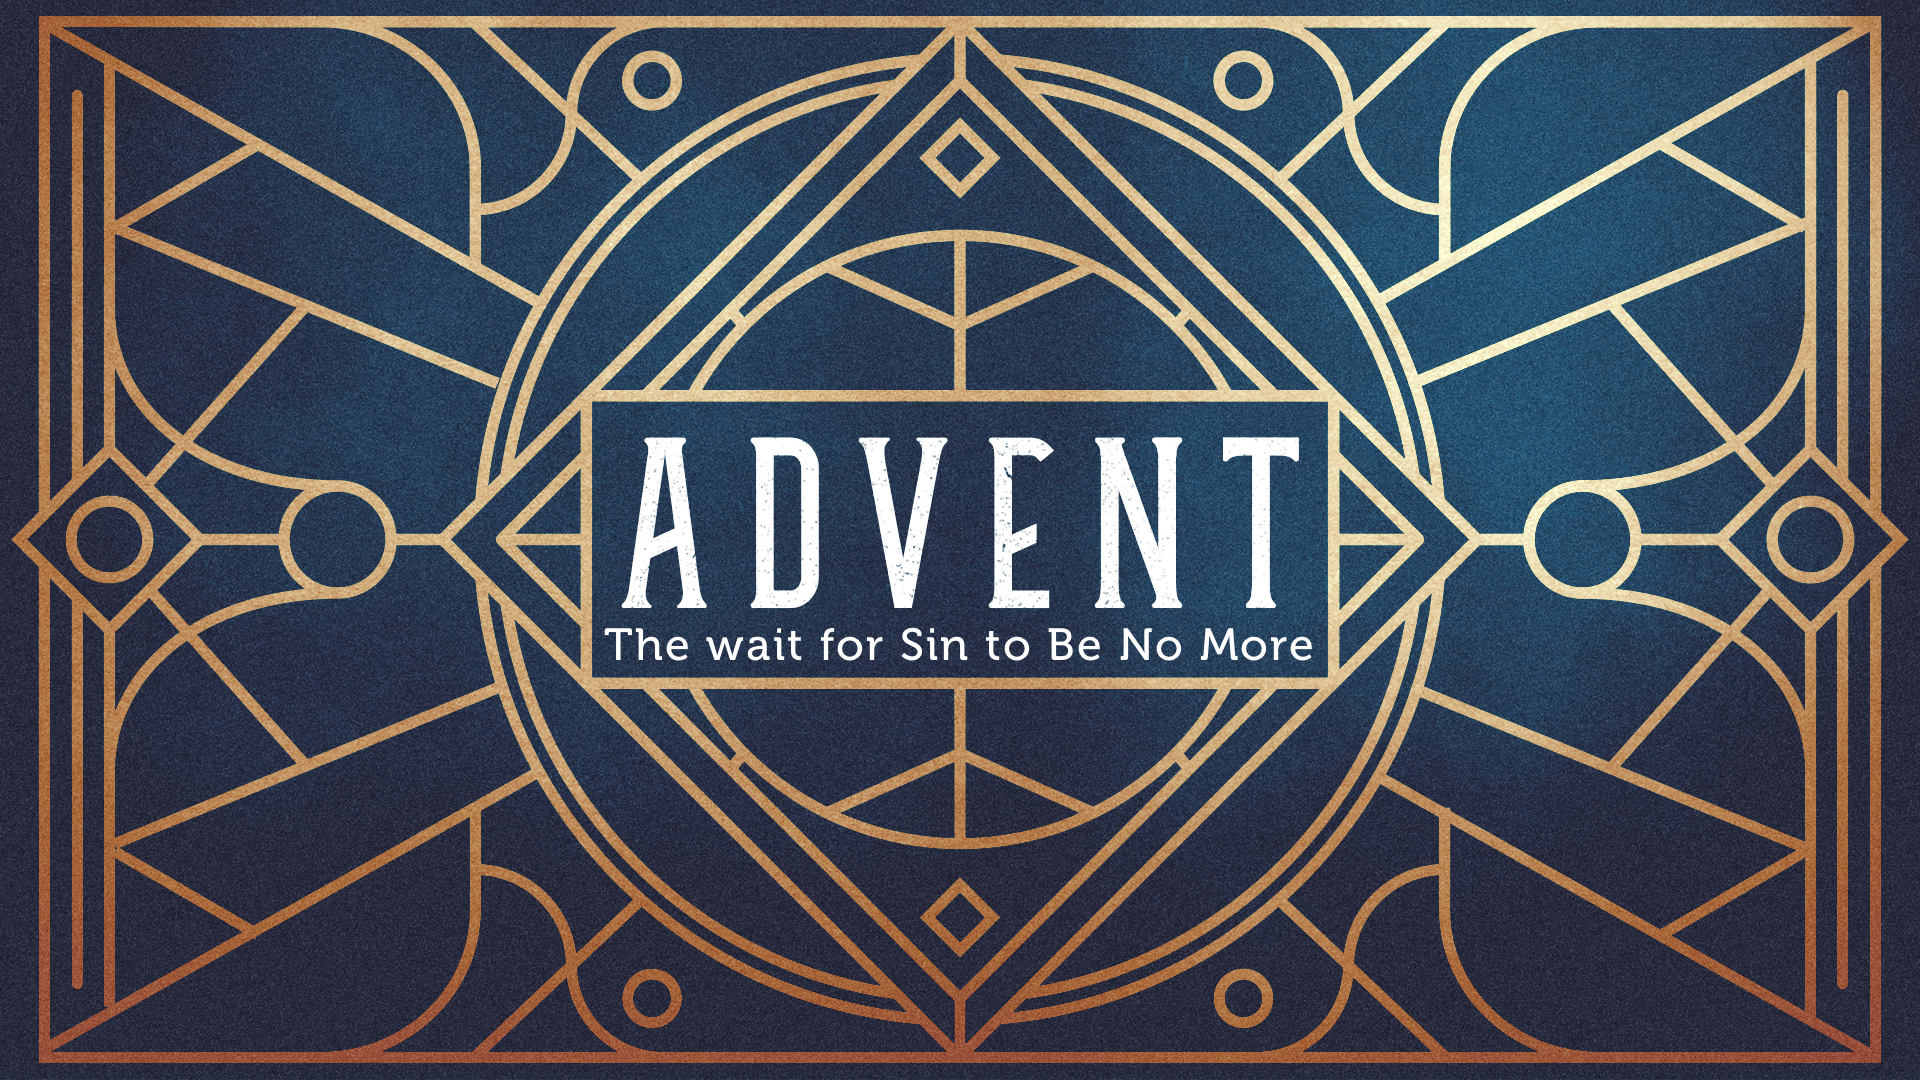 The Wait for Sin To Be No More